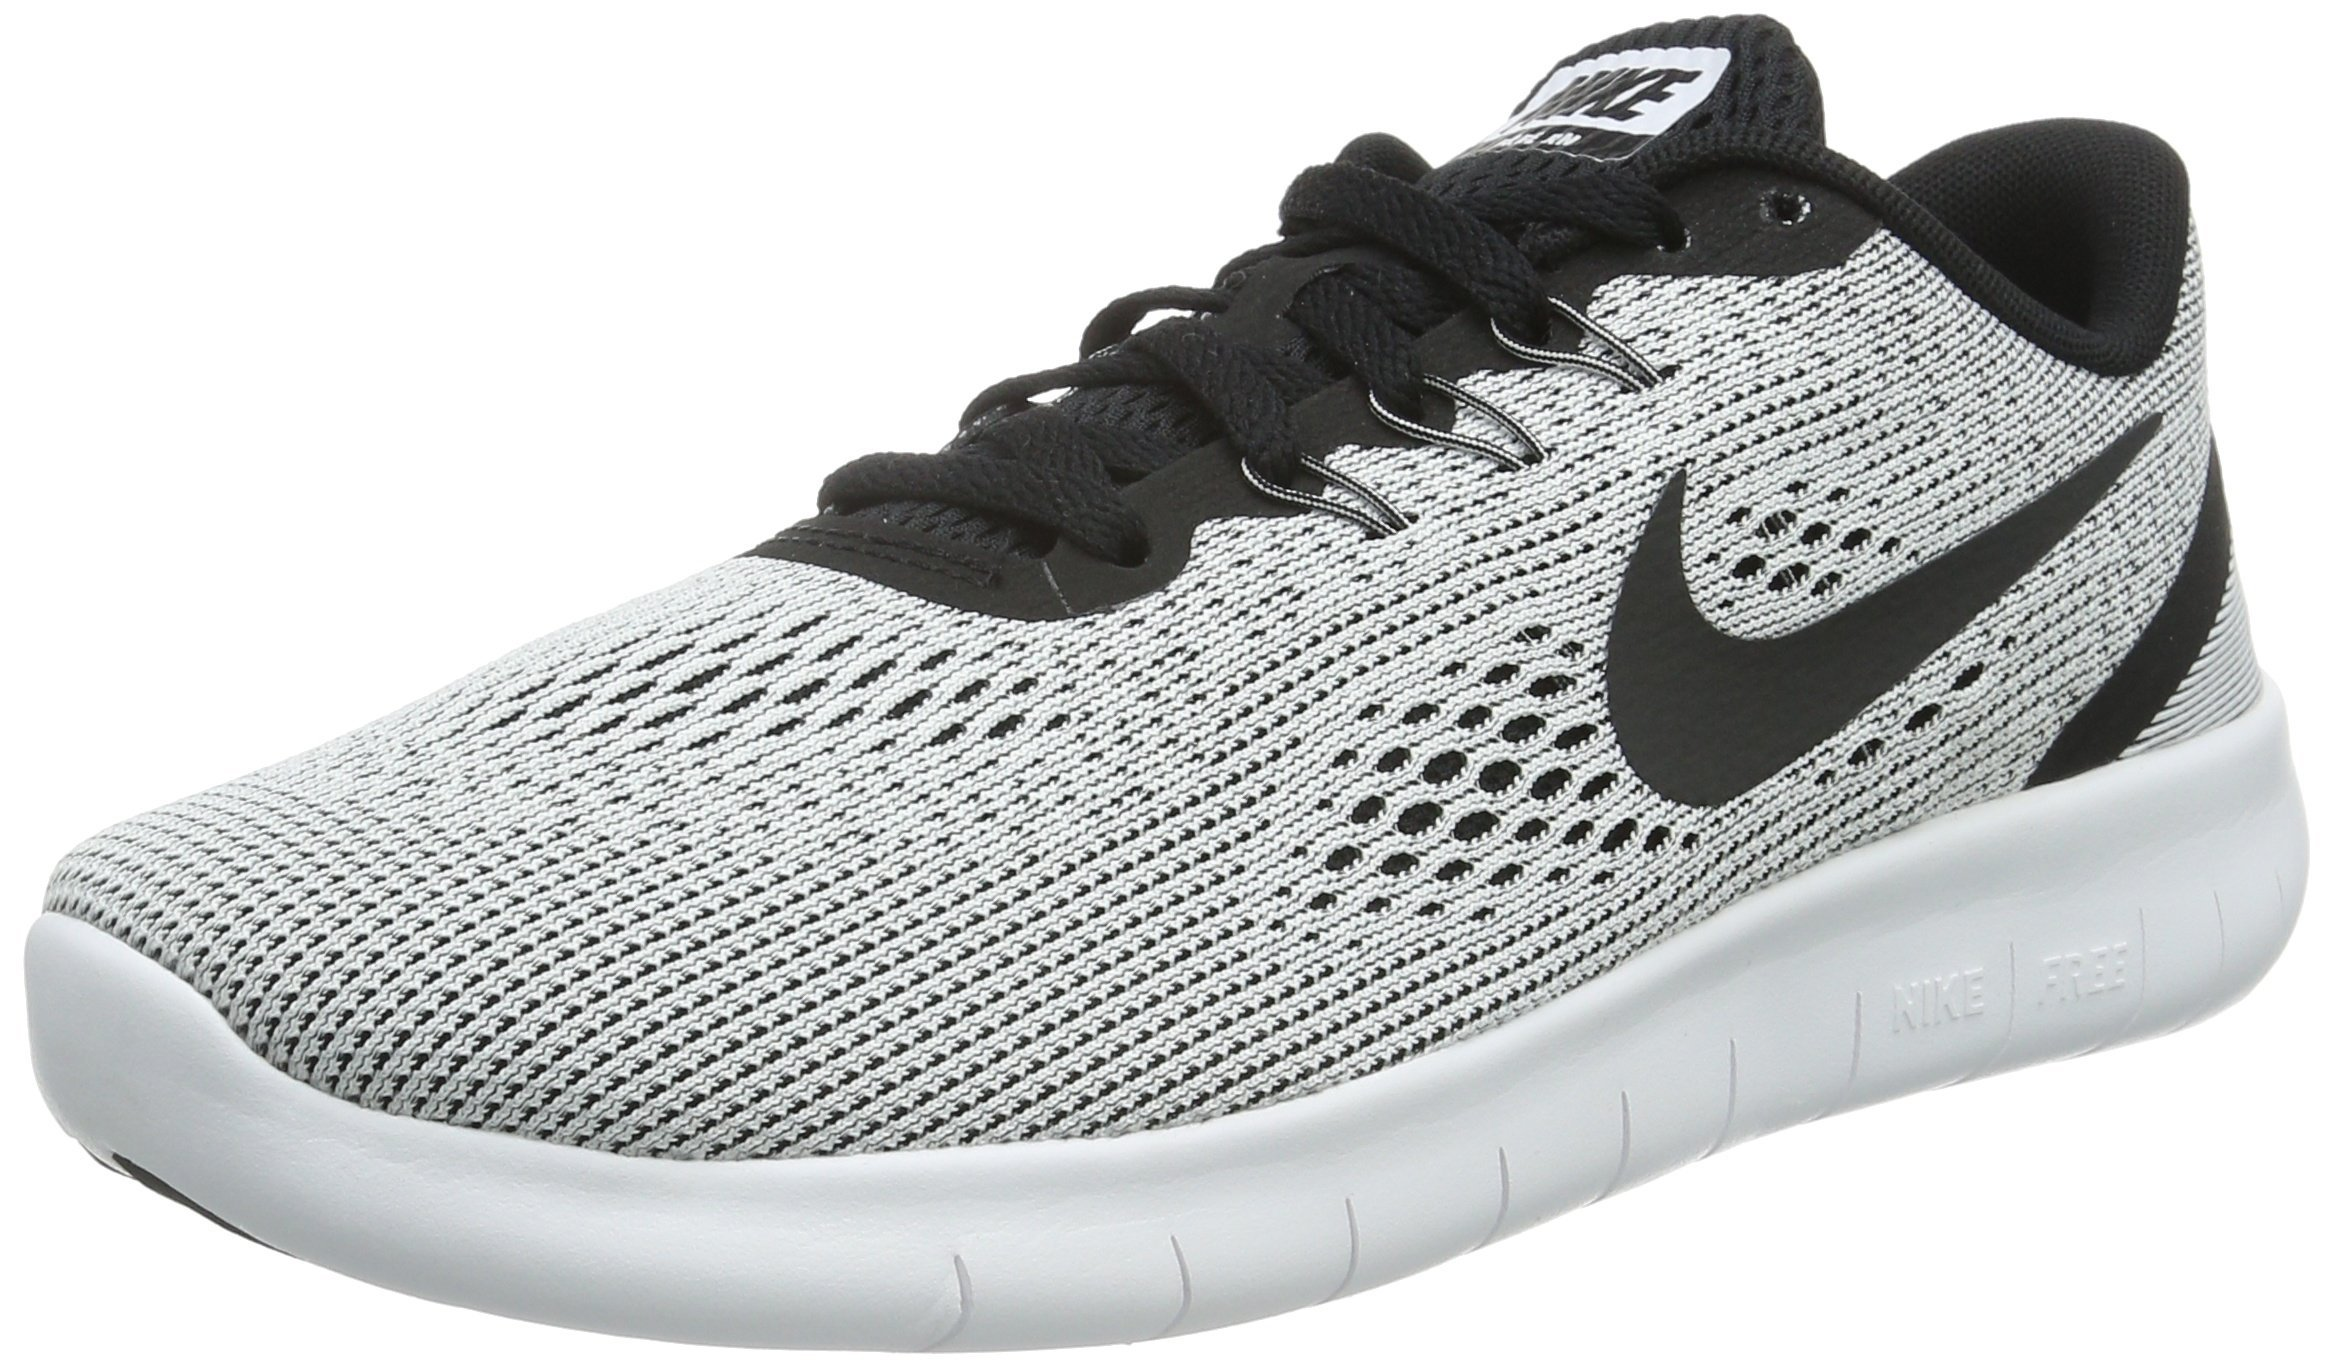 NIKE Youth Free RN Running Shoes-White/Black-6.5